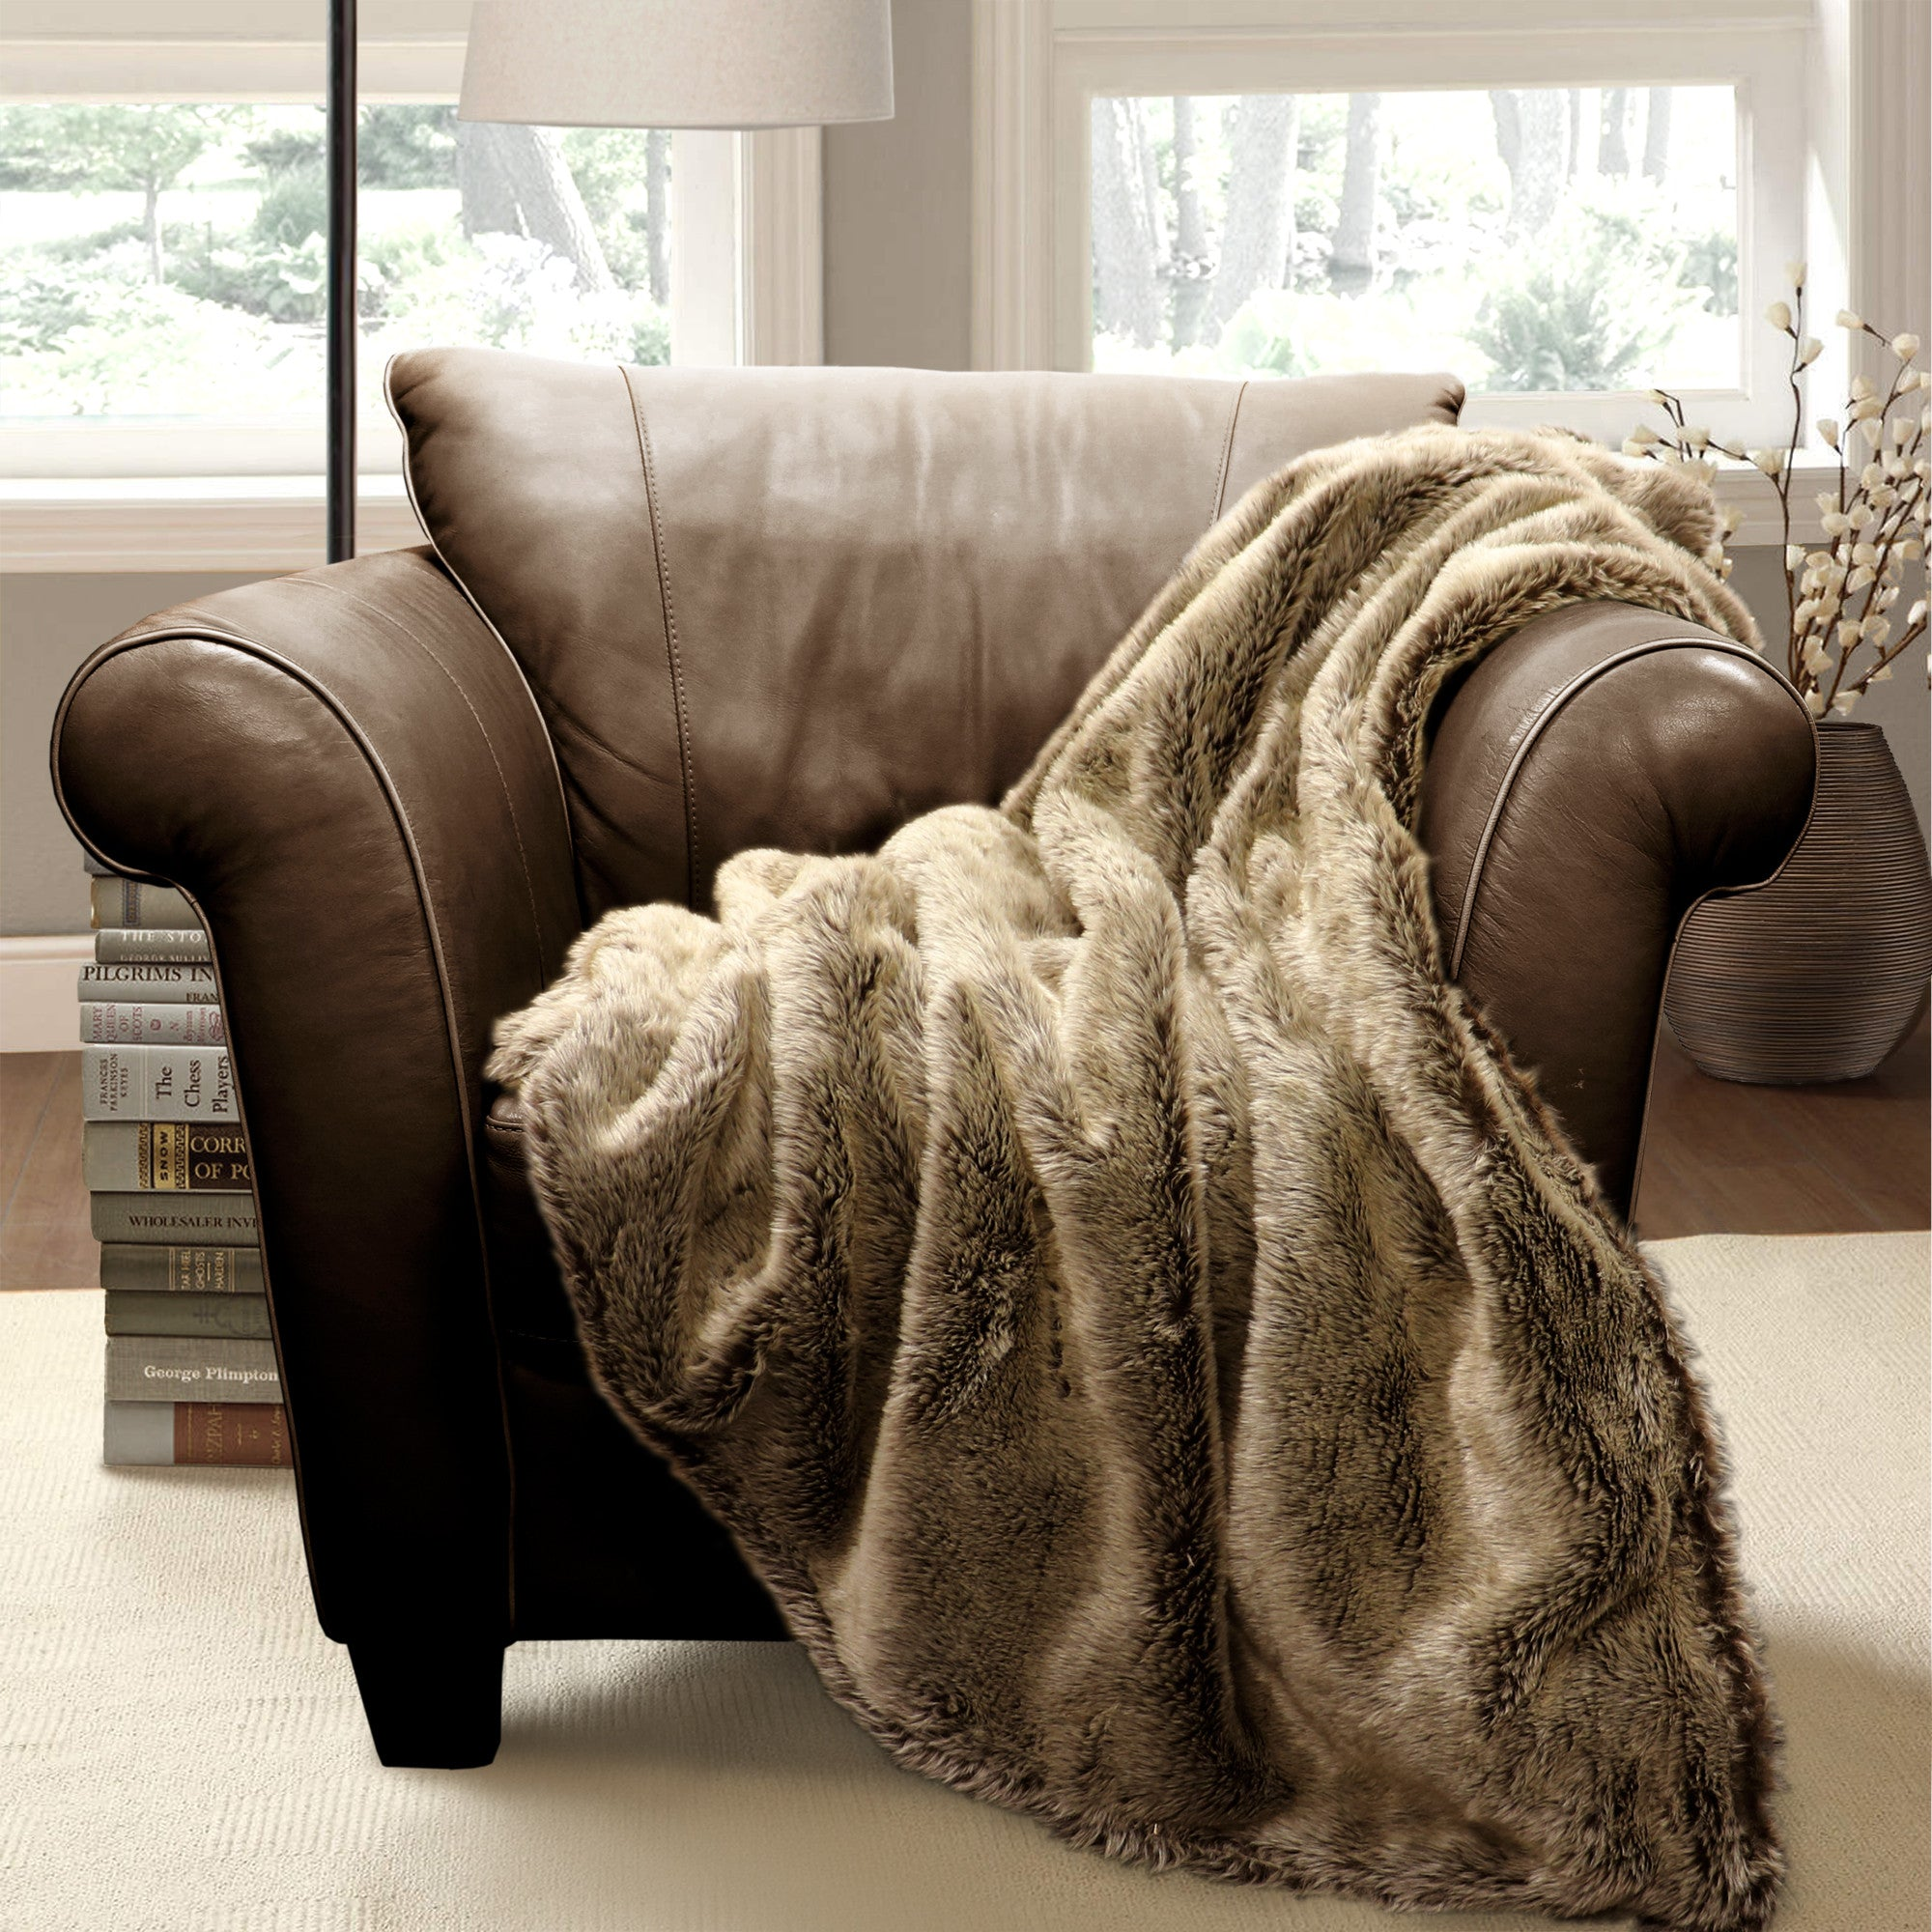 airee white mink faux home views throw fur bed bedding more brown throws grey blanket furnishings large fairee